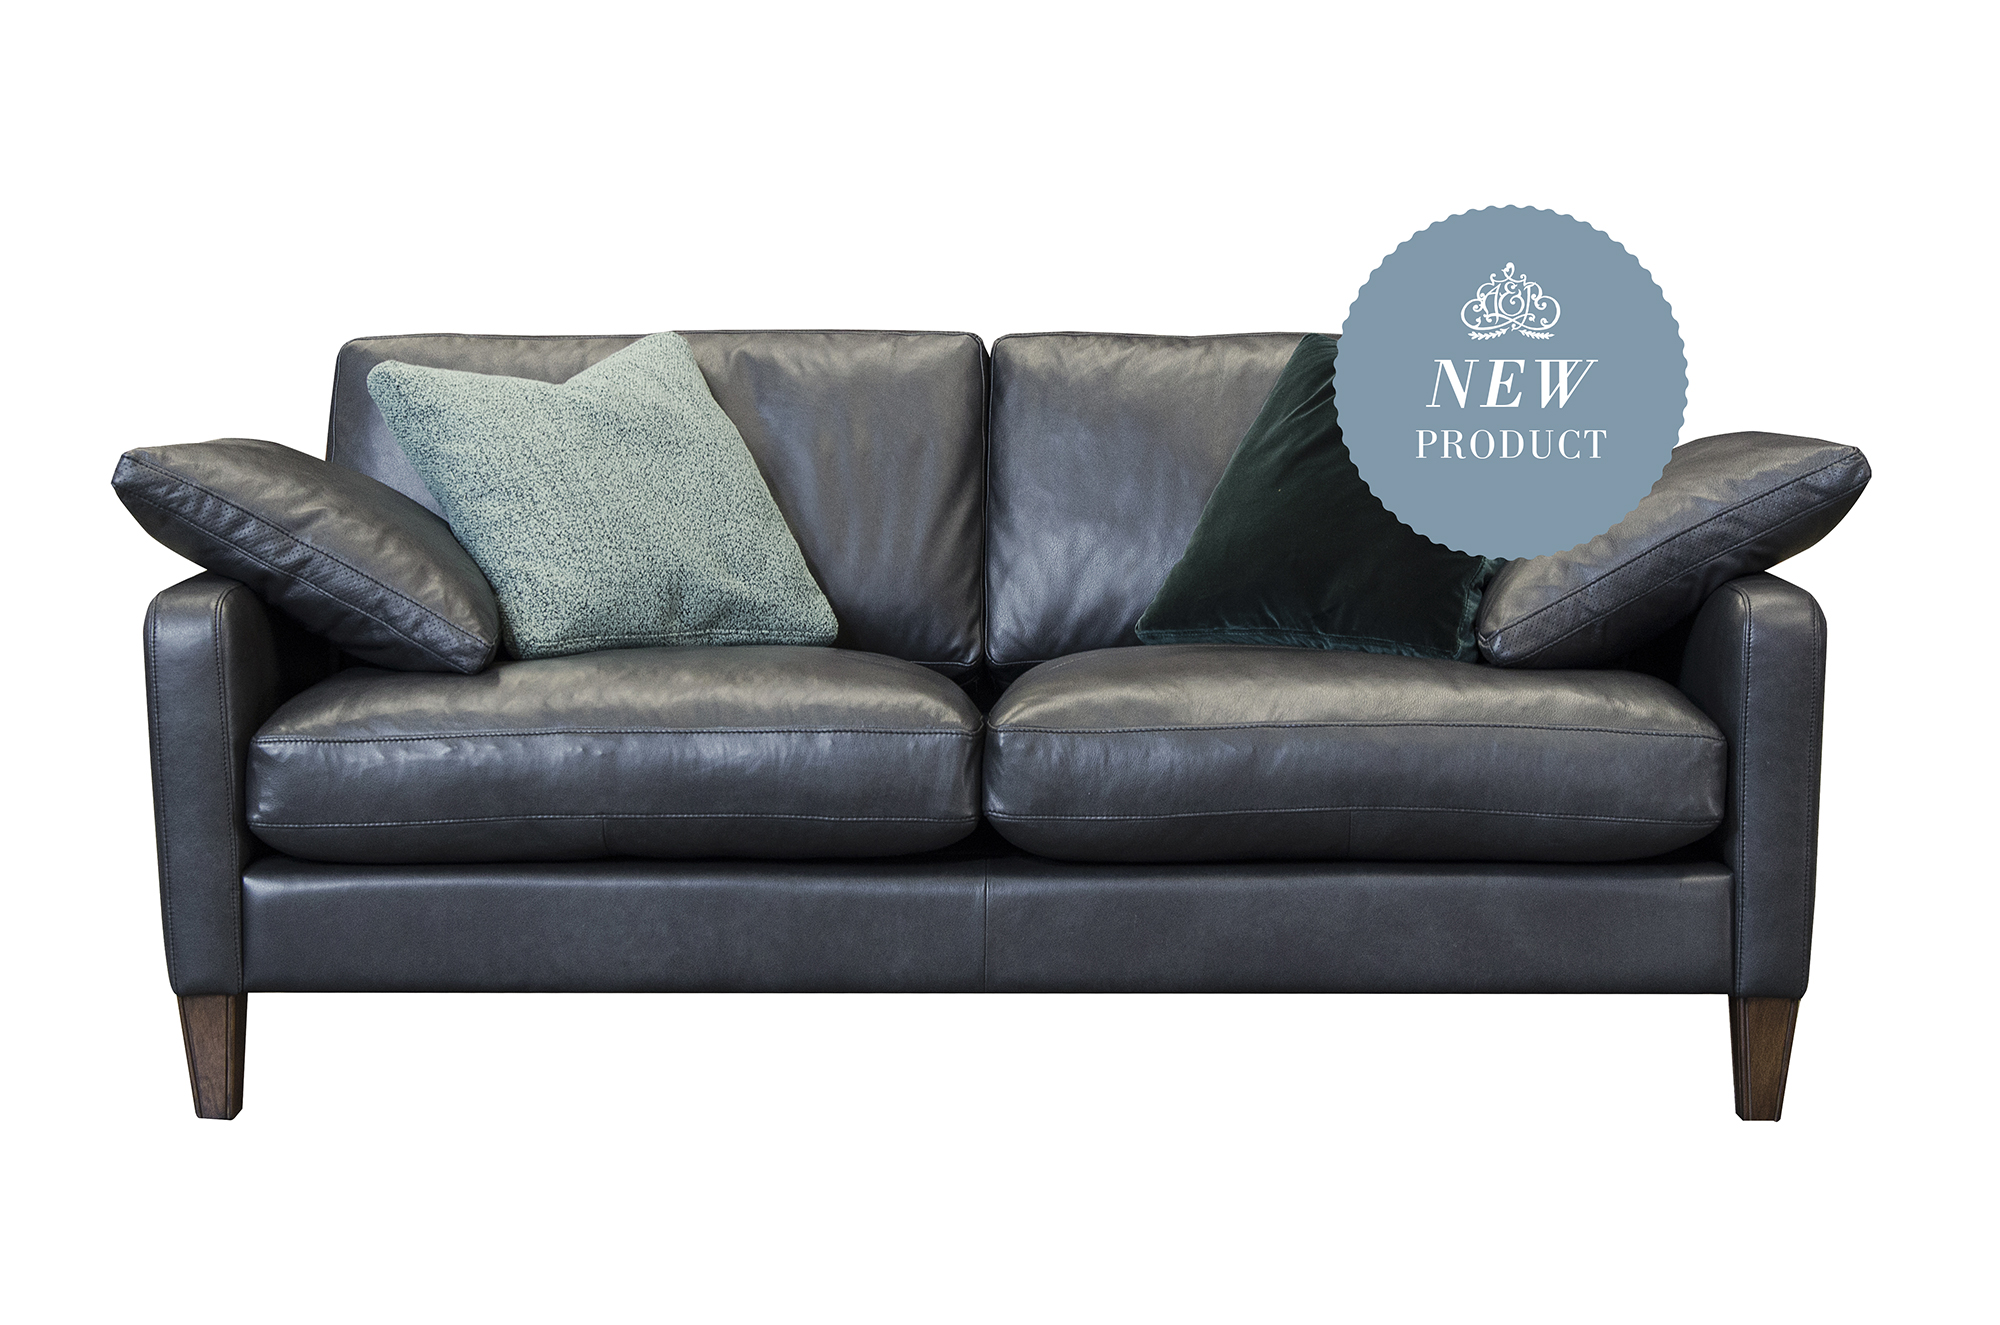 Hoxton Midi Sofa in Tote Night